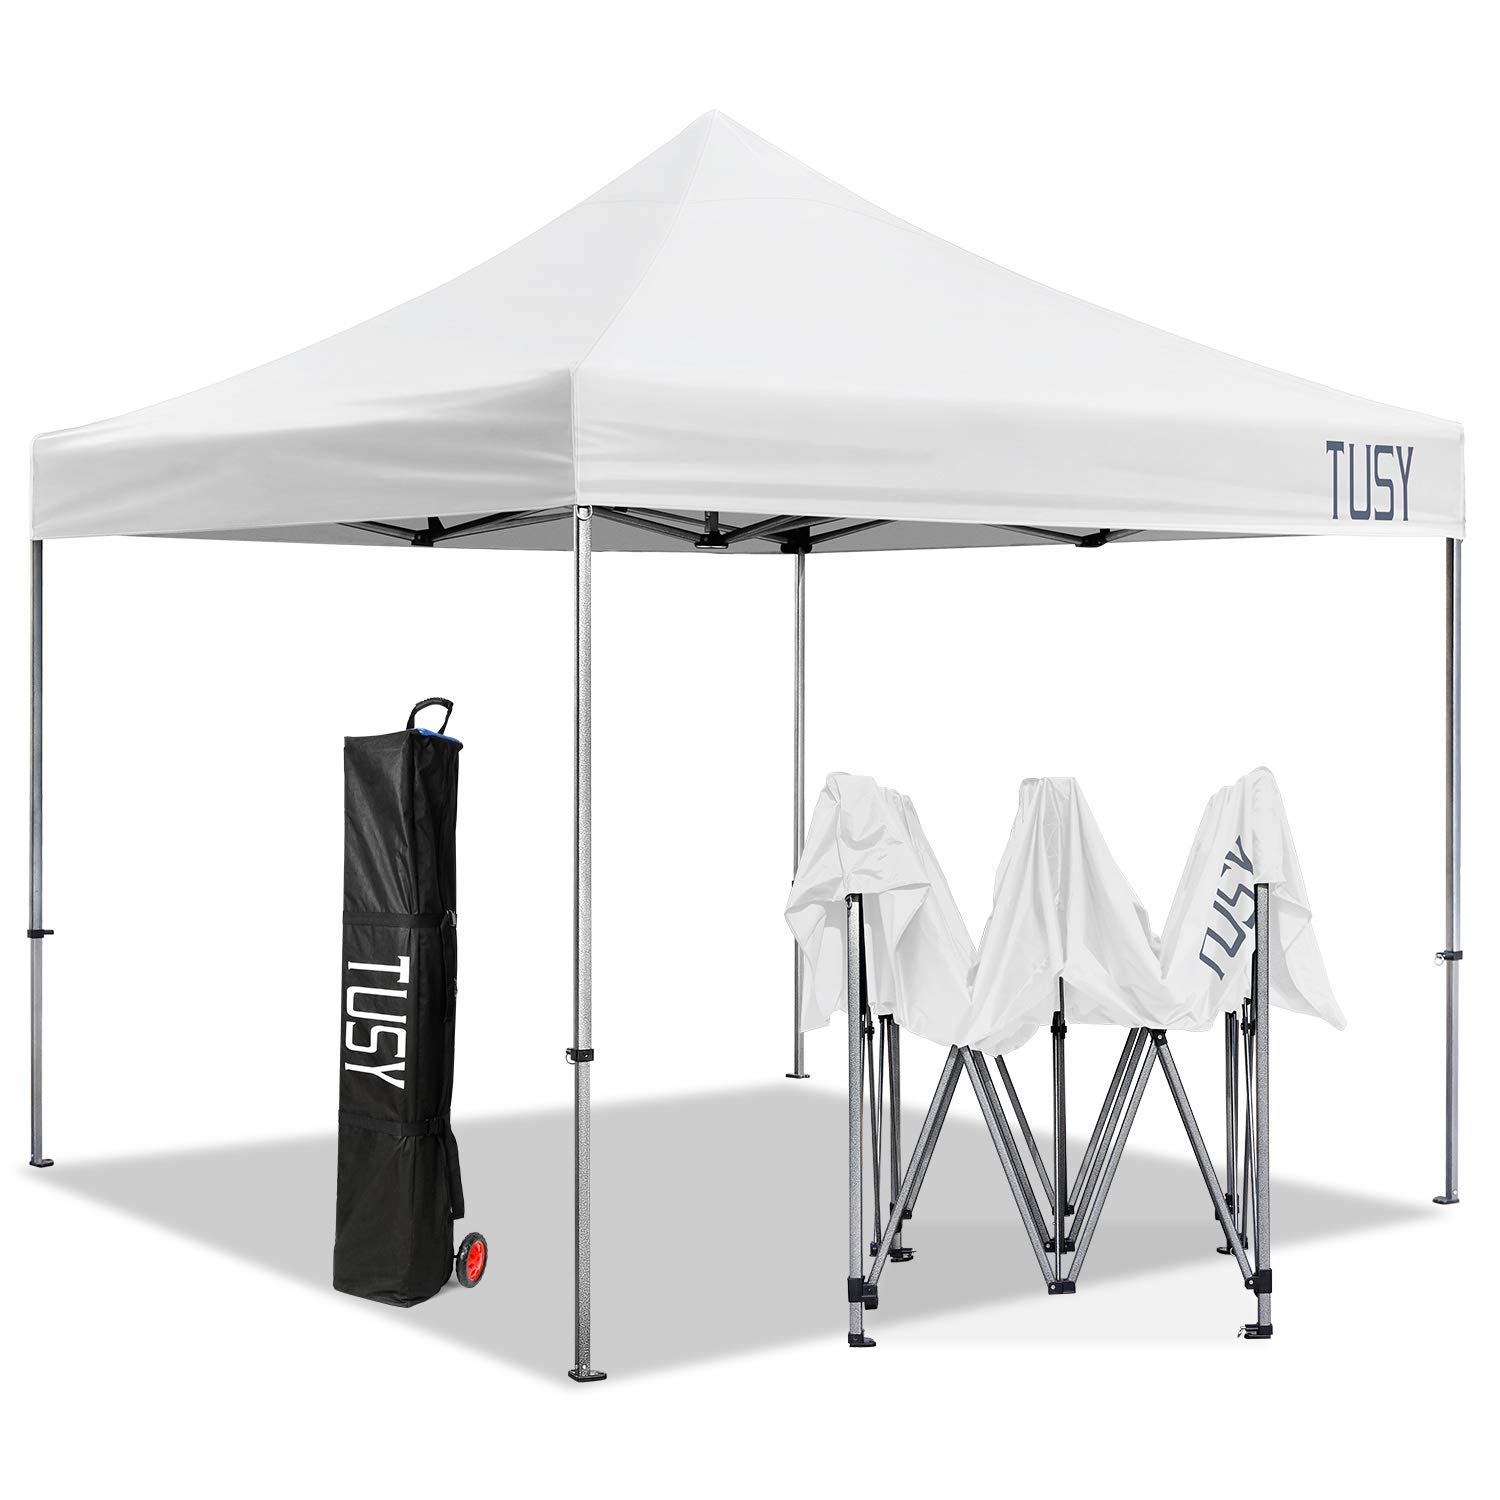 TUSY 10 x 10 Instant Shelter Pop up Canopy Tent, Commercial Canopies Outdoor Portable Shade with Heavy Duty Roller Bag, White